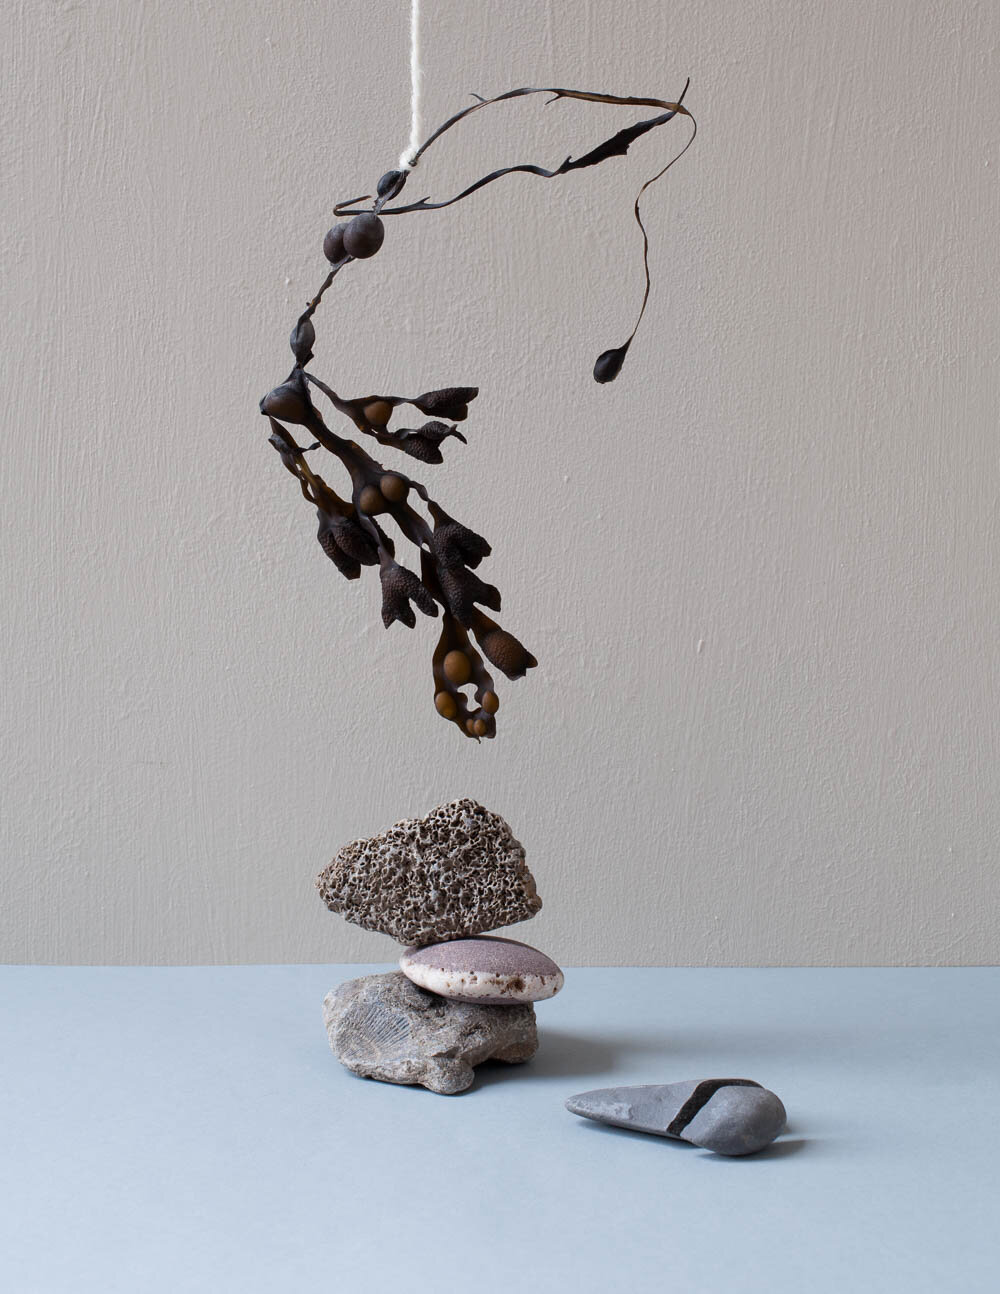 Photograph of a hanging seaweed and pebbles sculpture